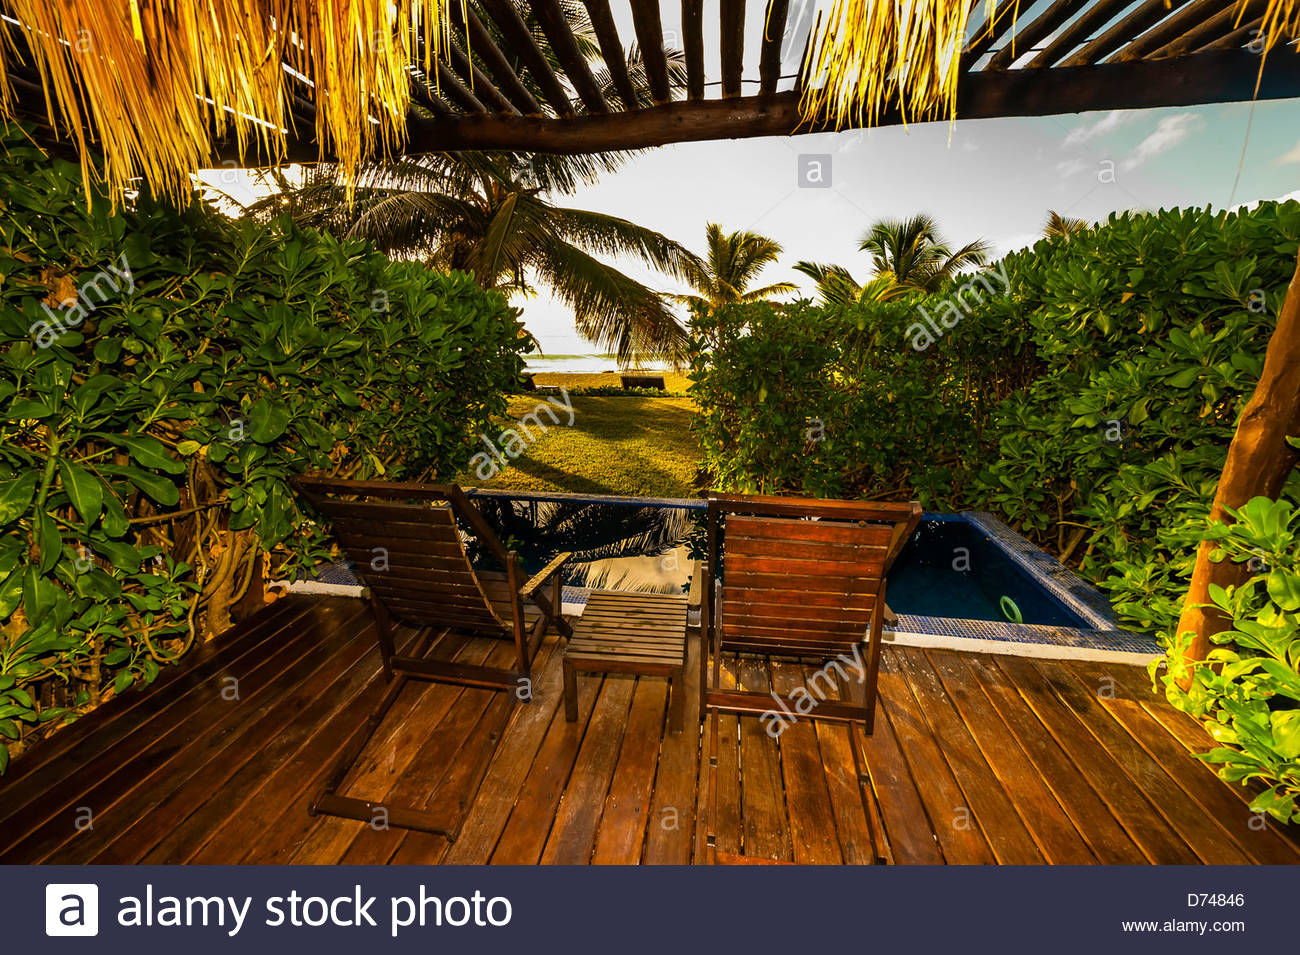 A guest room's porch and plunge pool, Le Reve Hotel, Riviera Maya, Quintana Roo, Mexico - Stock Image